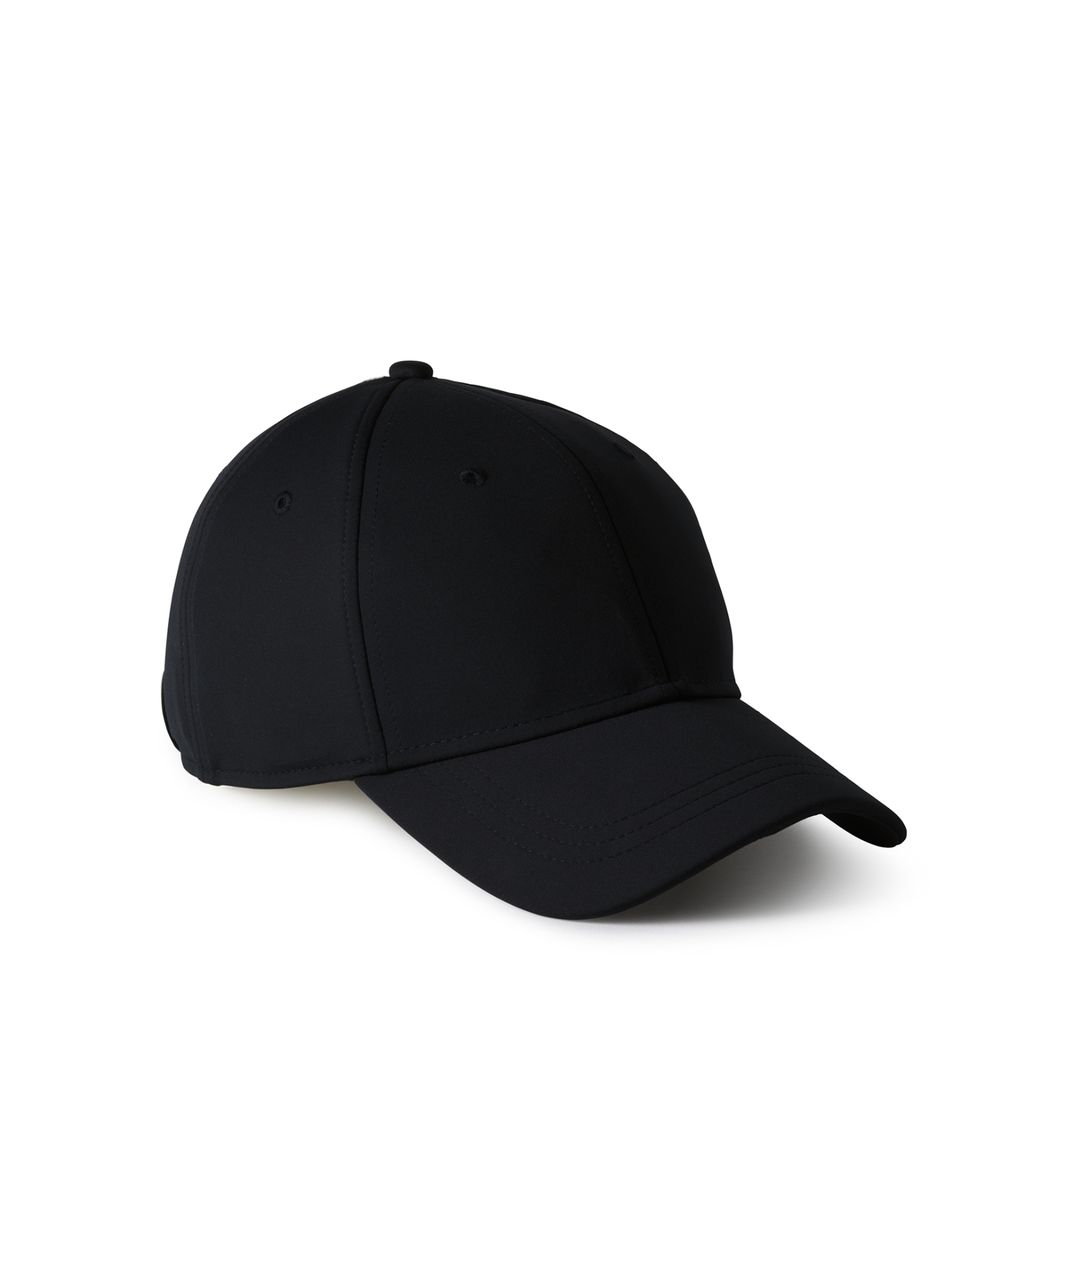 Lululemon Baller Hat - Black (First Release)